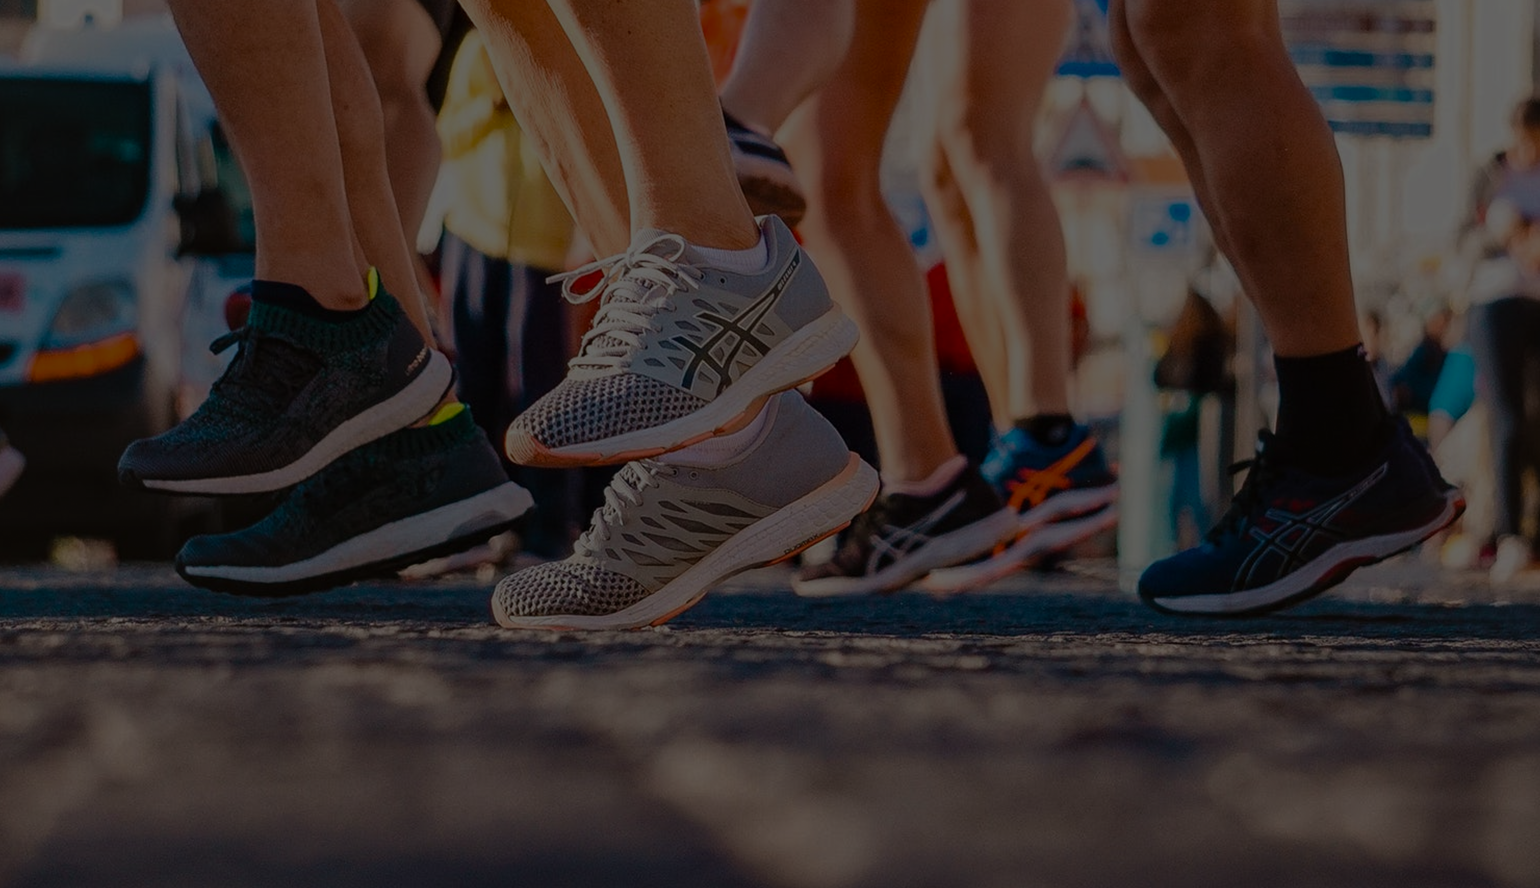 CNN of kicks and biggest encyclopedia of sneakers powered by WordPress VIP and REST APIs